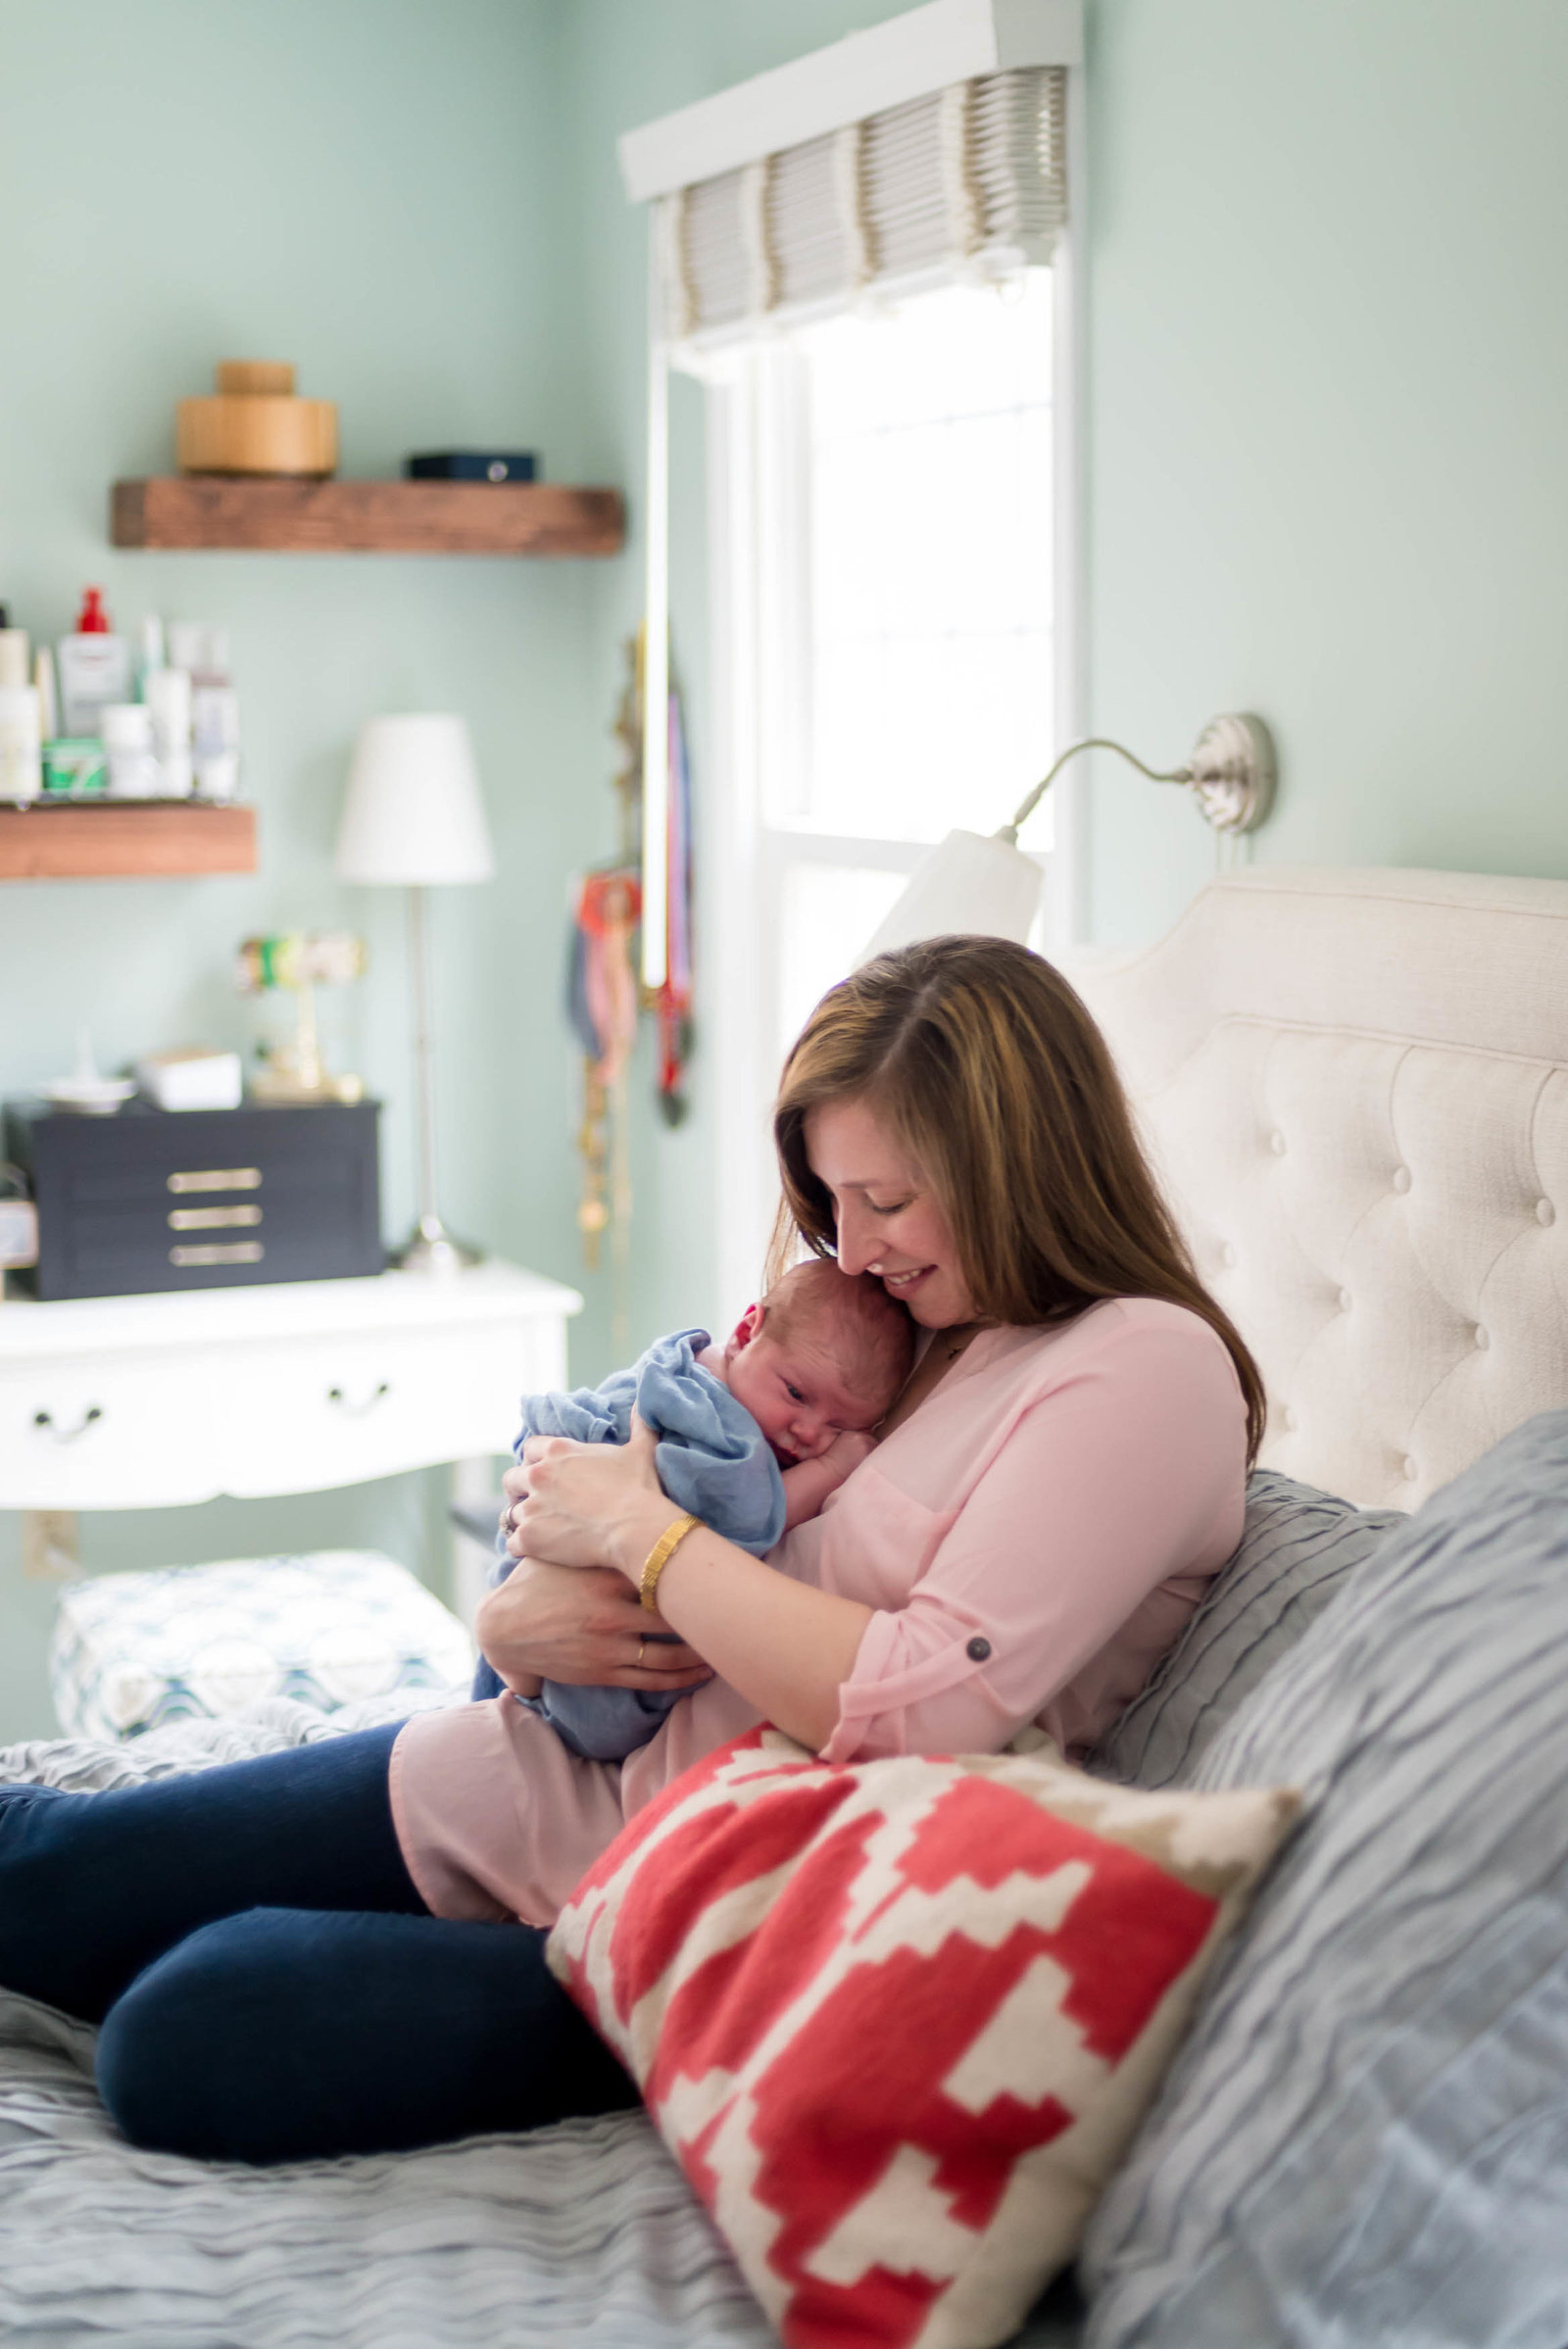 Boston-Newborn-Photographer-Lifestyle-Documentary-Home-Styled-Session-346